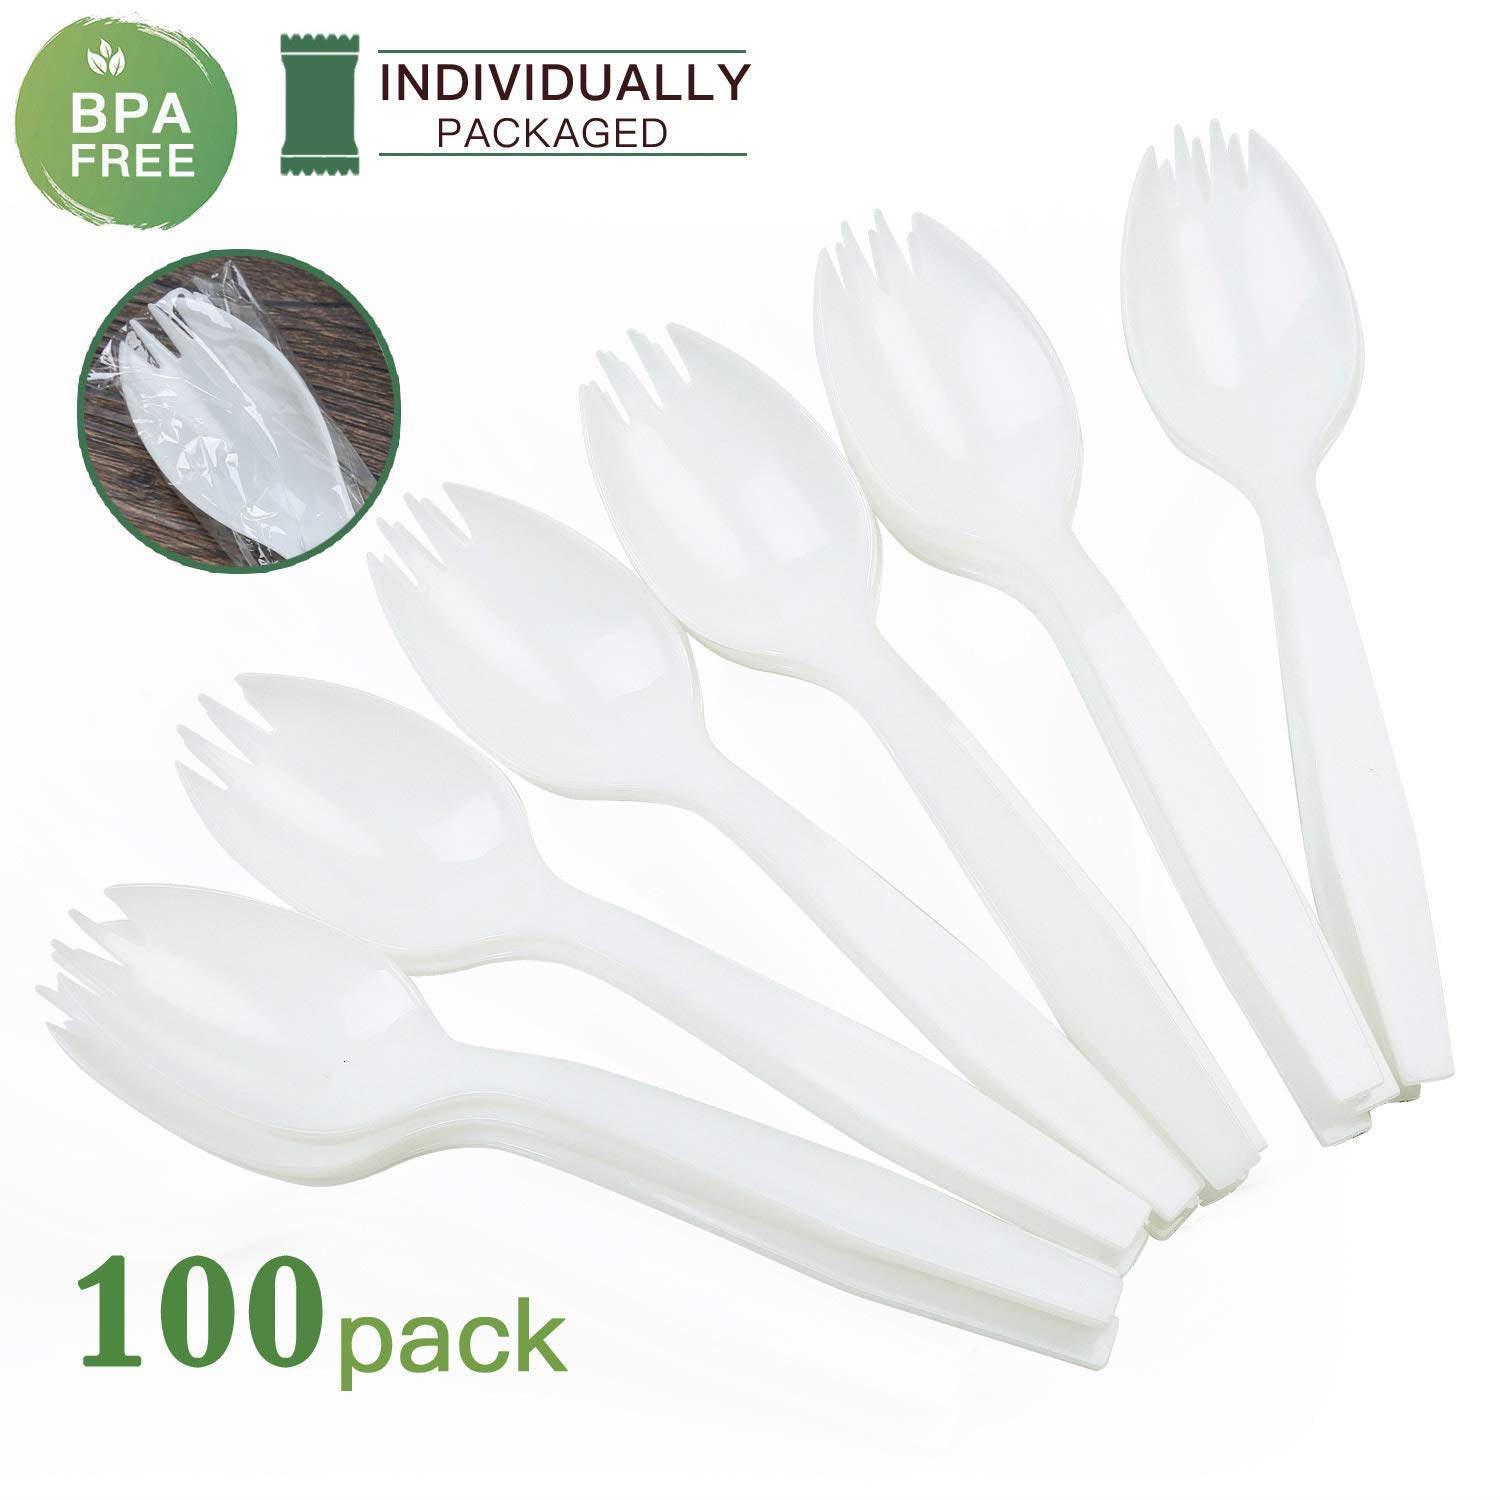 KAISHANE 100 Pieces White Disposable plastic Sporks Eco-Friendly BPA FREE Individually wrapped Sporks for School Lunch, Picnics or Party. by KAISHANE